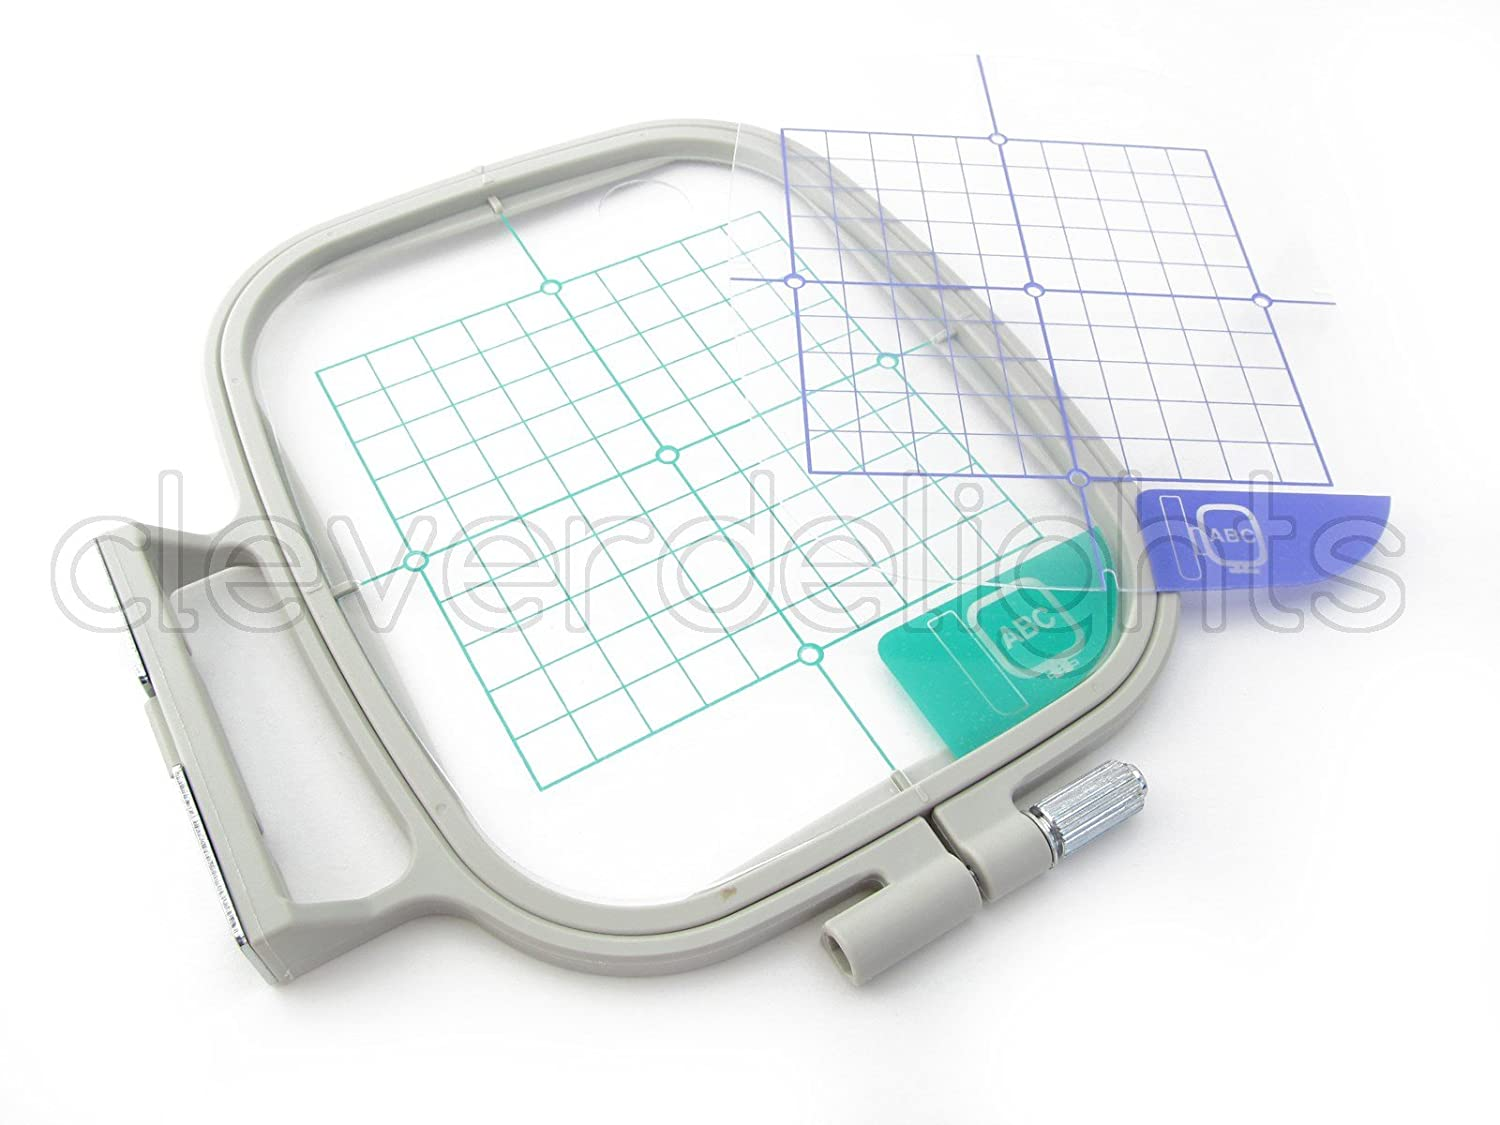 Medium Embroidery Hoop – SA443 Replacement